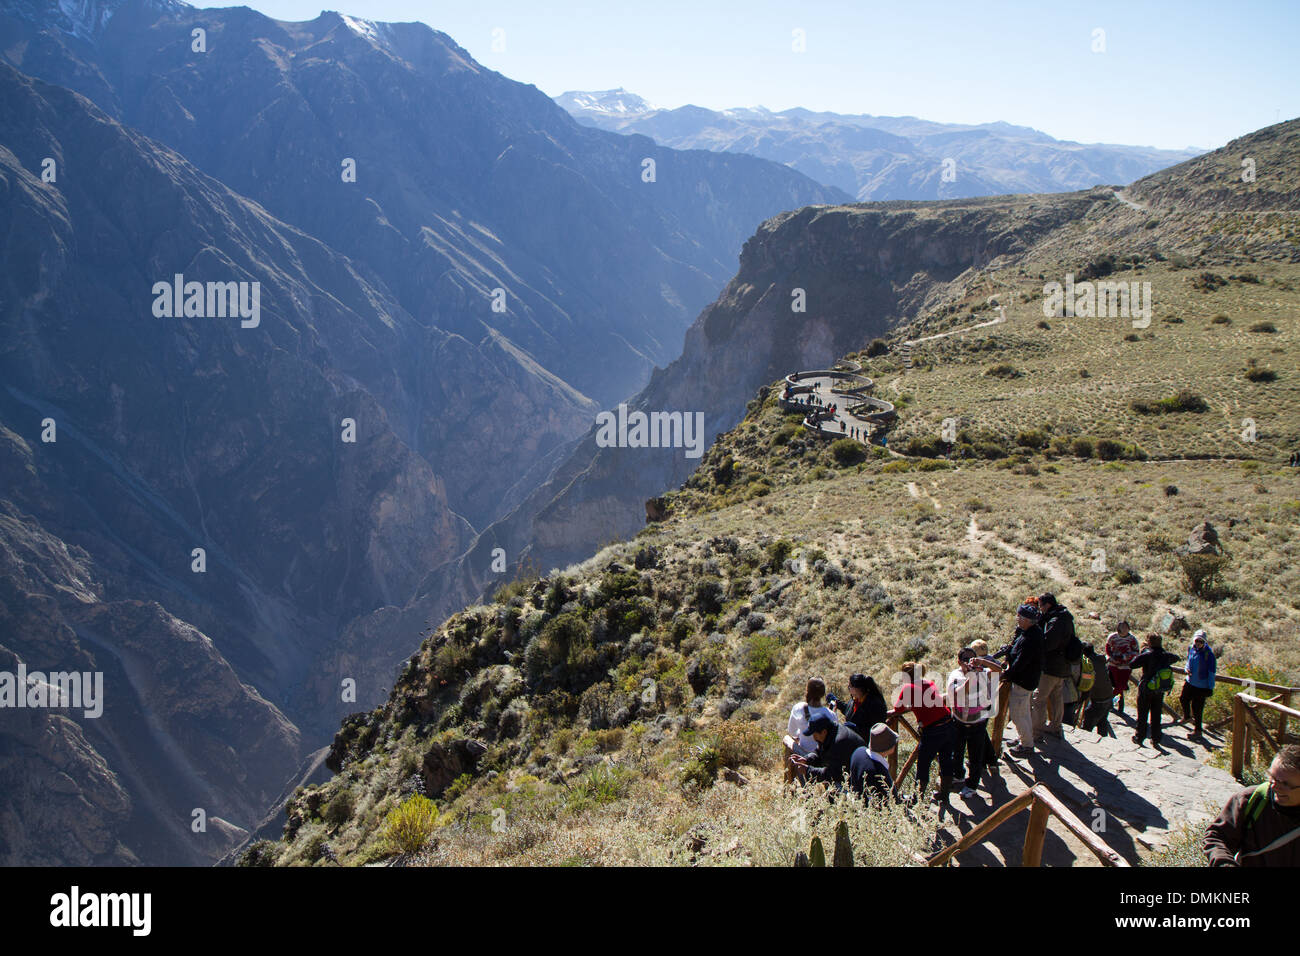 Cruz del Condor, Viewpoint at Colca Canyon, Peru - Stock Image